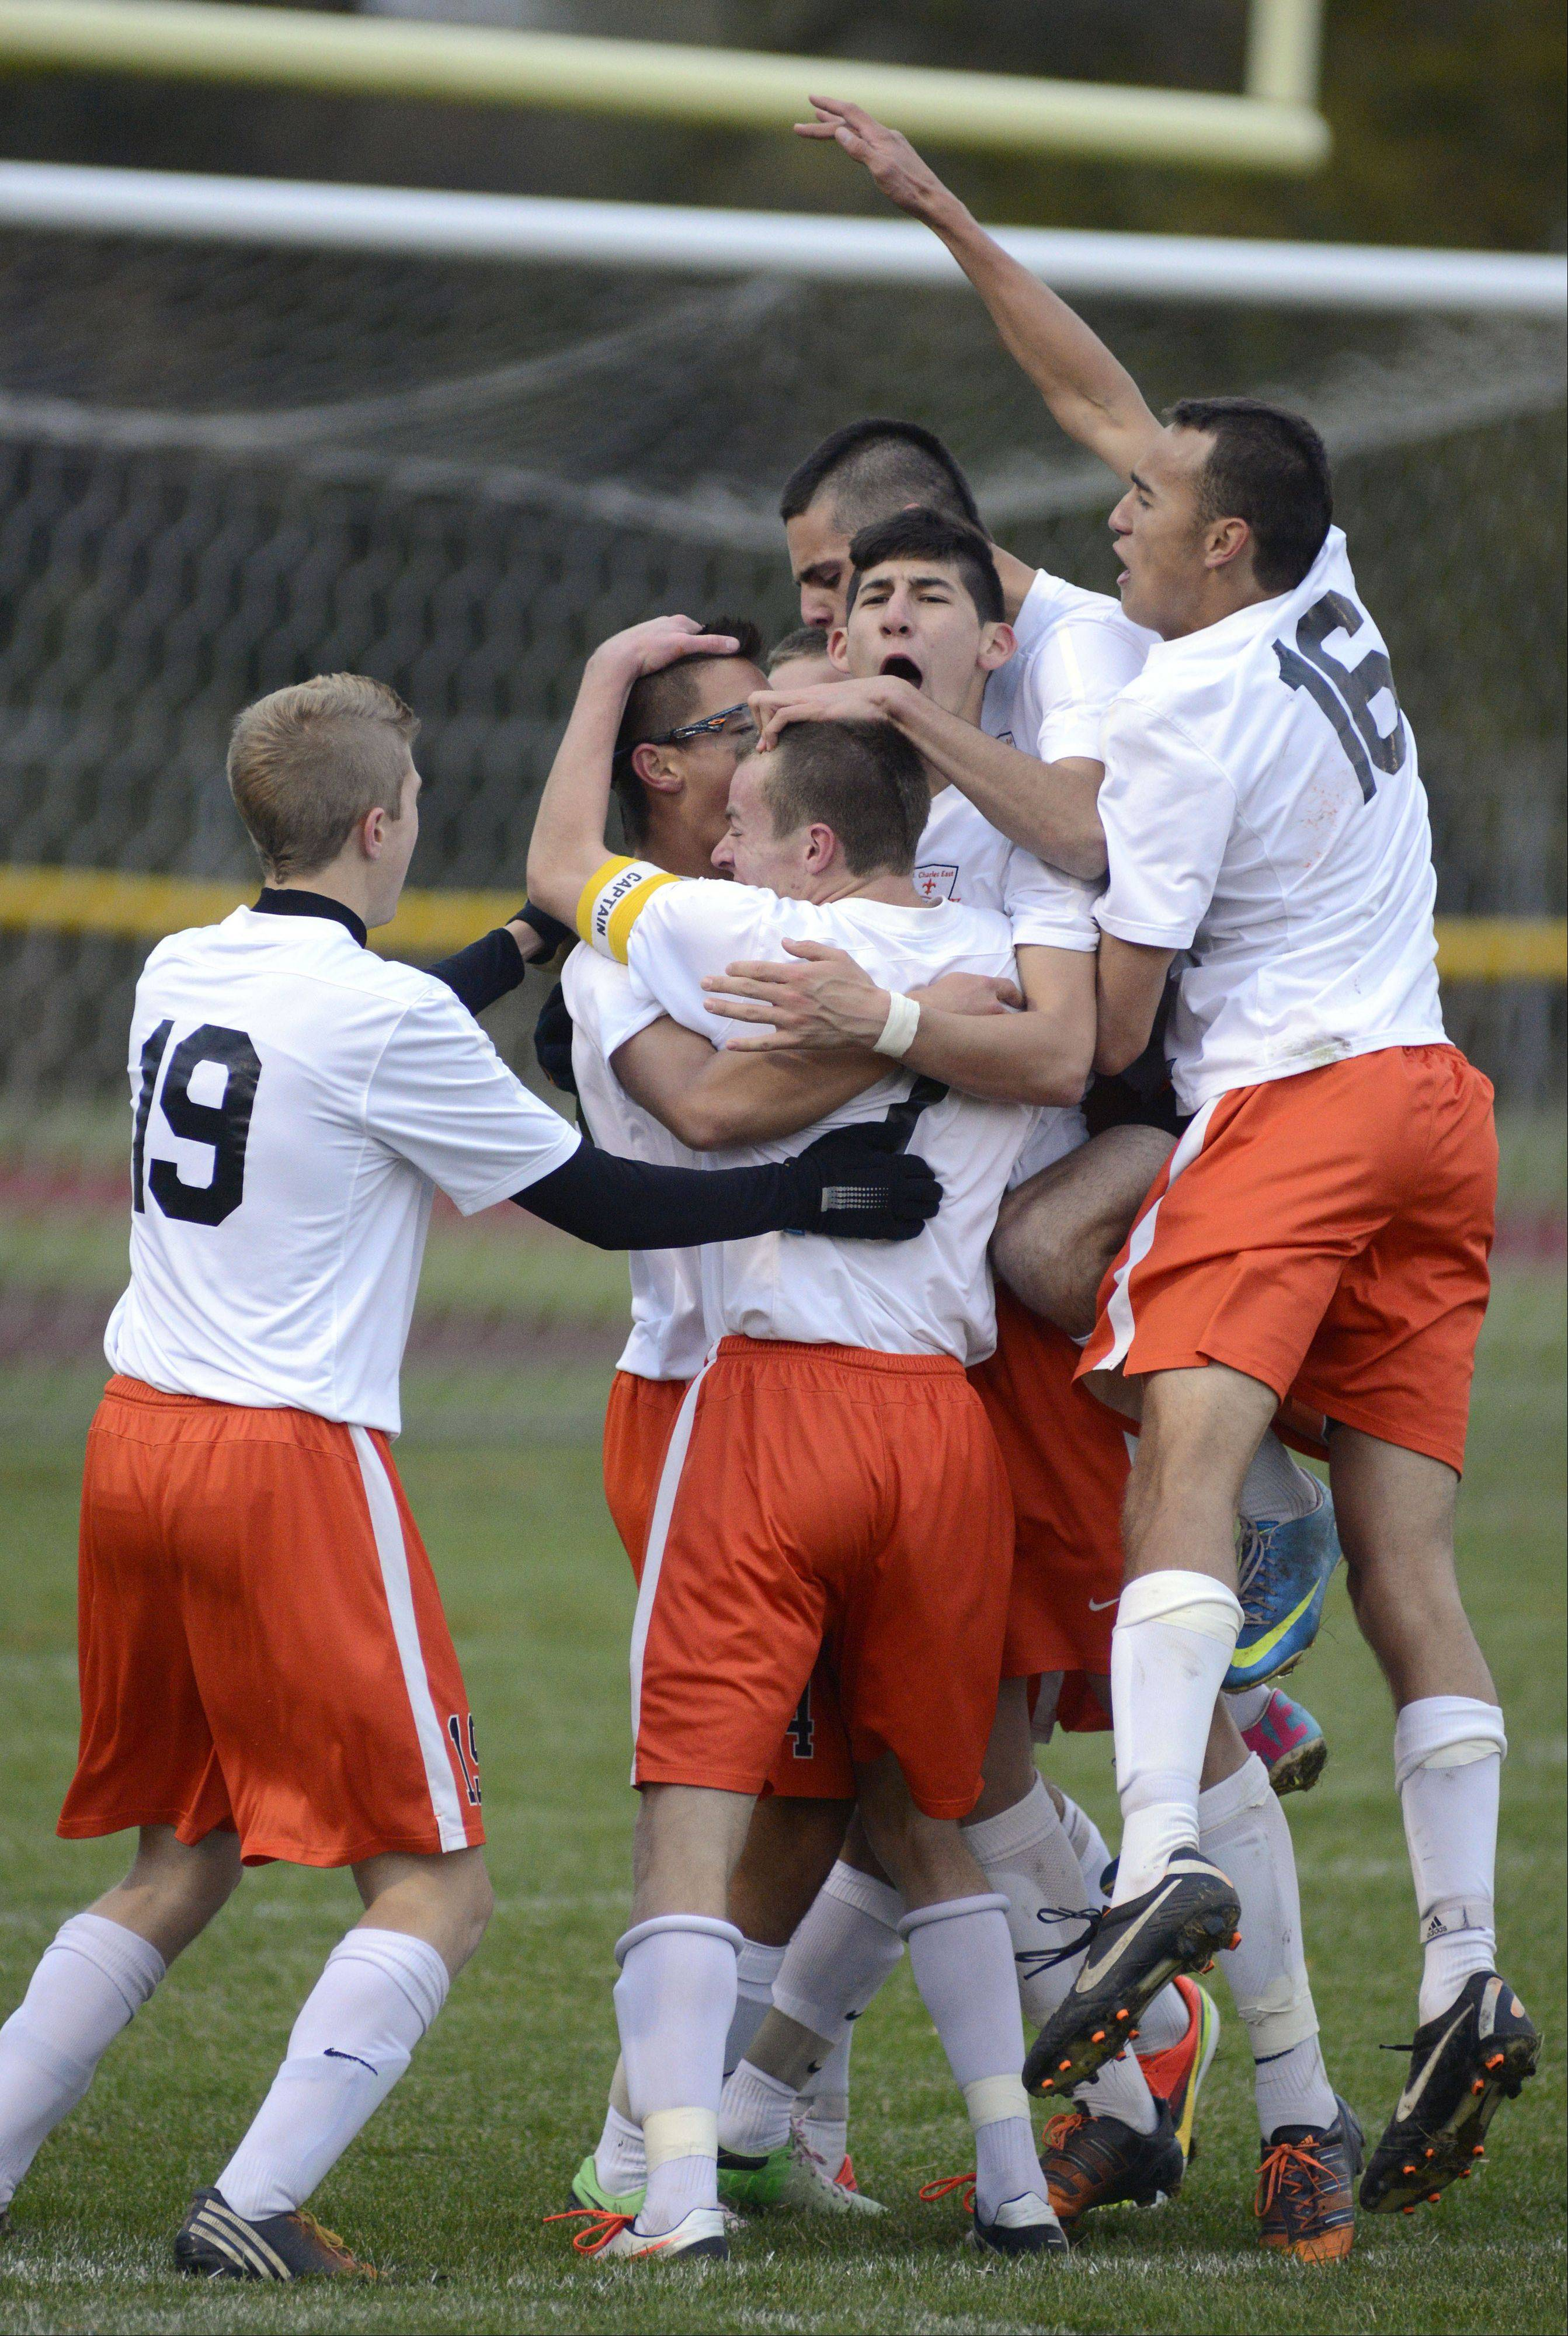 St. Charles East's Zach Manibog (center, with glasses) is swarmed by teammates after scoring the first goal for the Saints in the second half on Wednesday, October 23.